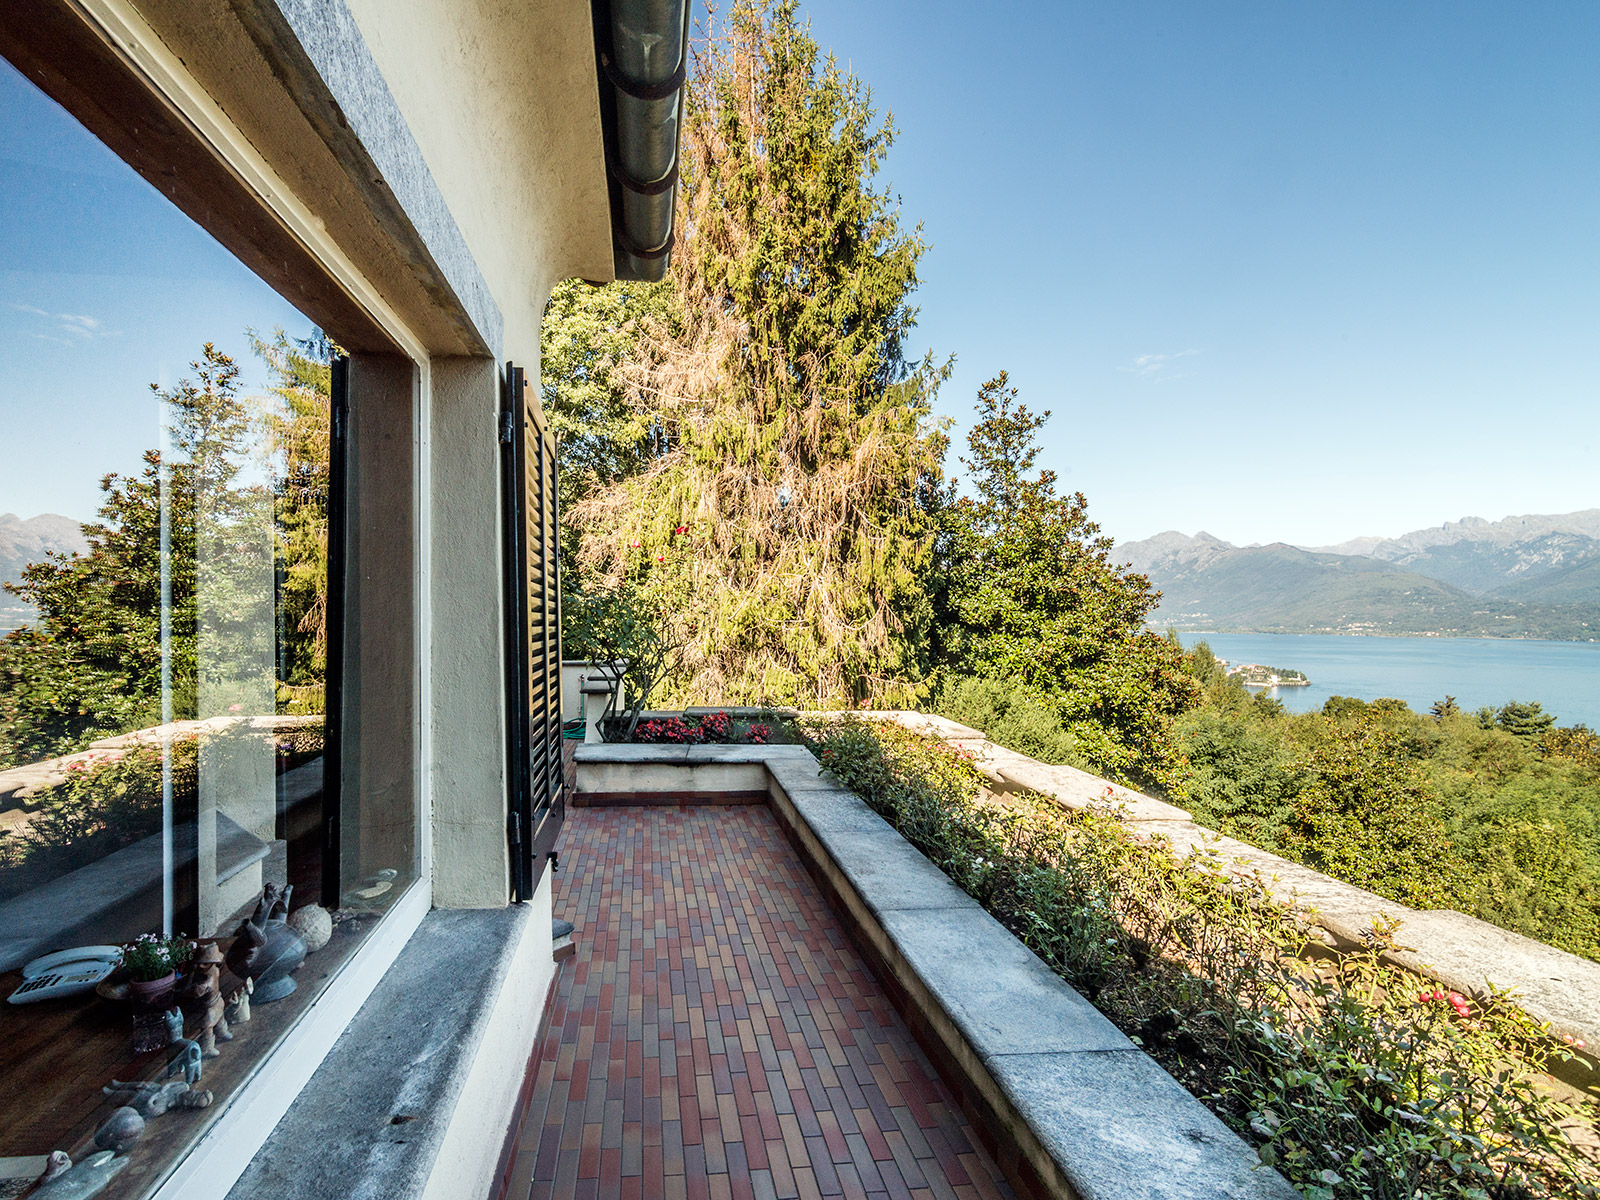 Additional photo for property listing at Lakefront villa with views of the Borromee Islands Stresa Stresa, Verbano Cusio Ossola 28838 Italien